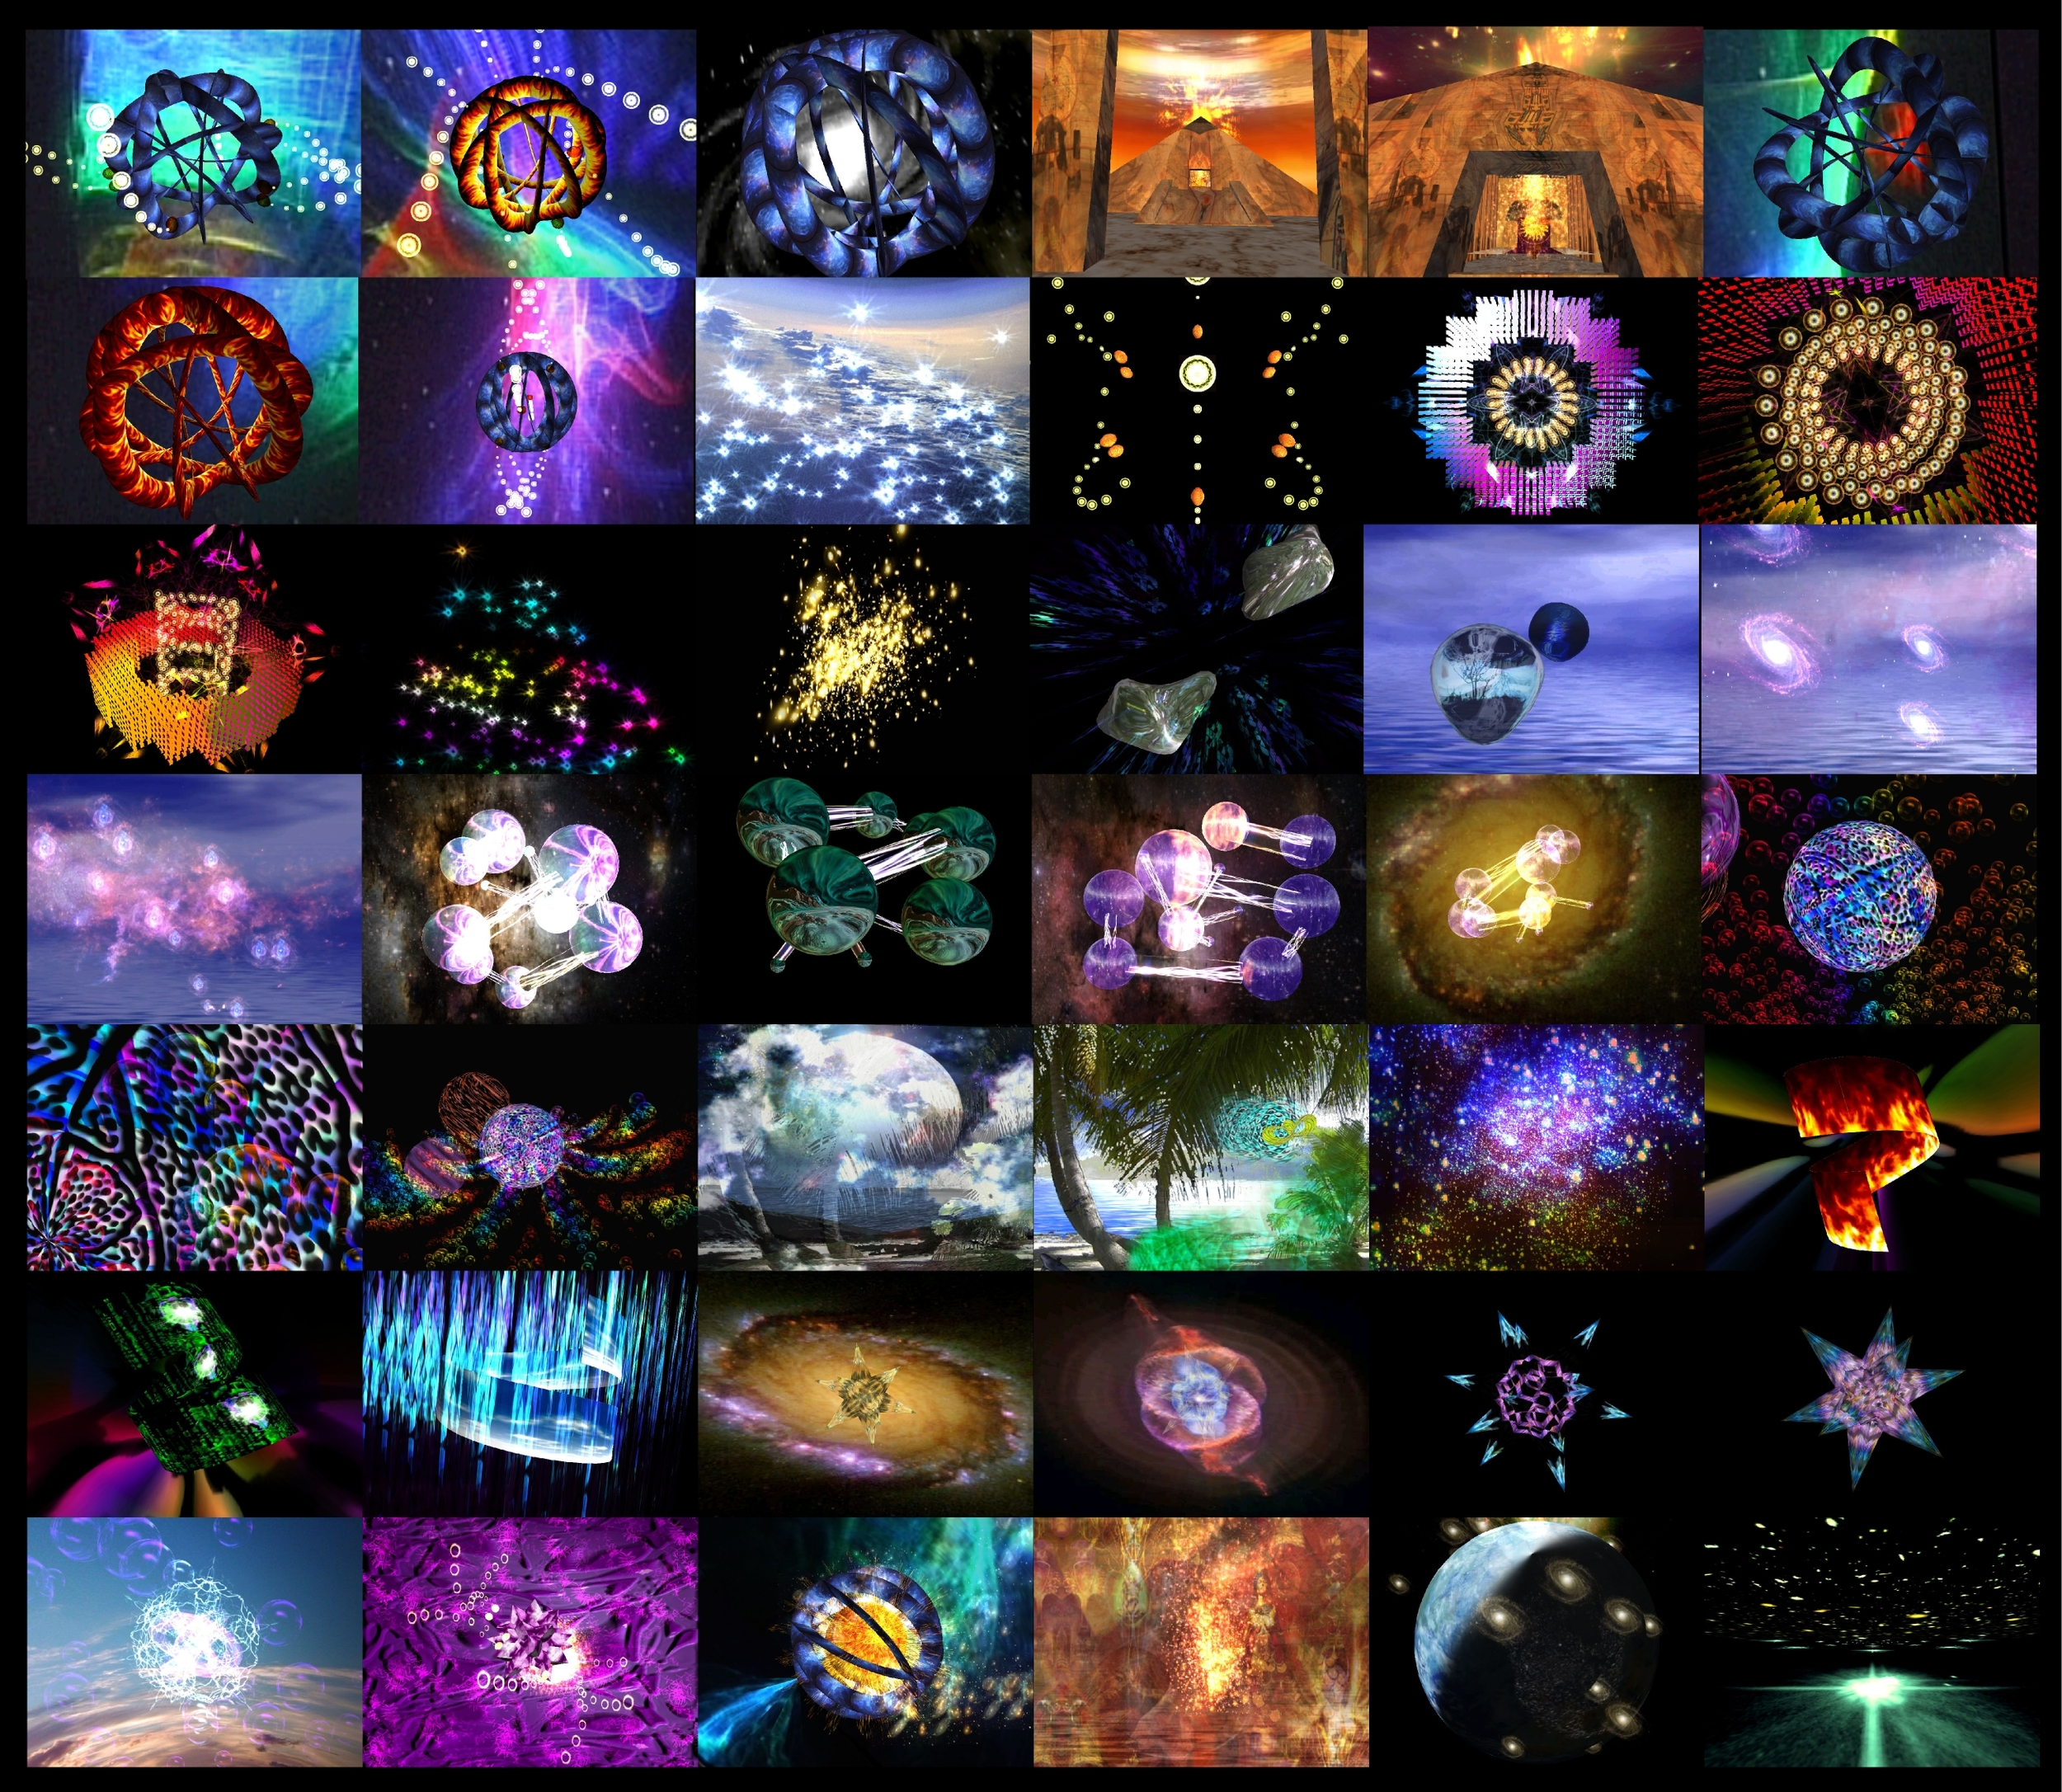 Above are screenshots of just a few examples out of SpaceHarp's library of hundreds of live player-interactive 3D animations. Players can choose which scenes they'd like to enjoy, and they get to be both a musician and a VJ at the same time! SpaceHarp's live music visuals can be experienced on any of several media options including curved screens, projections on screens or scrims, LED meshes, large formats and even digital domes.